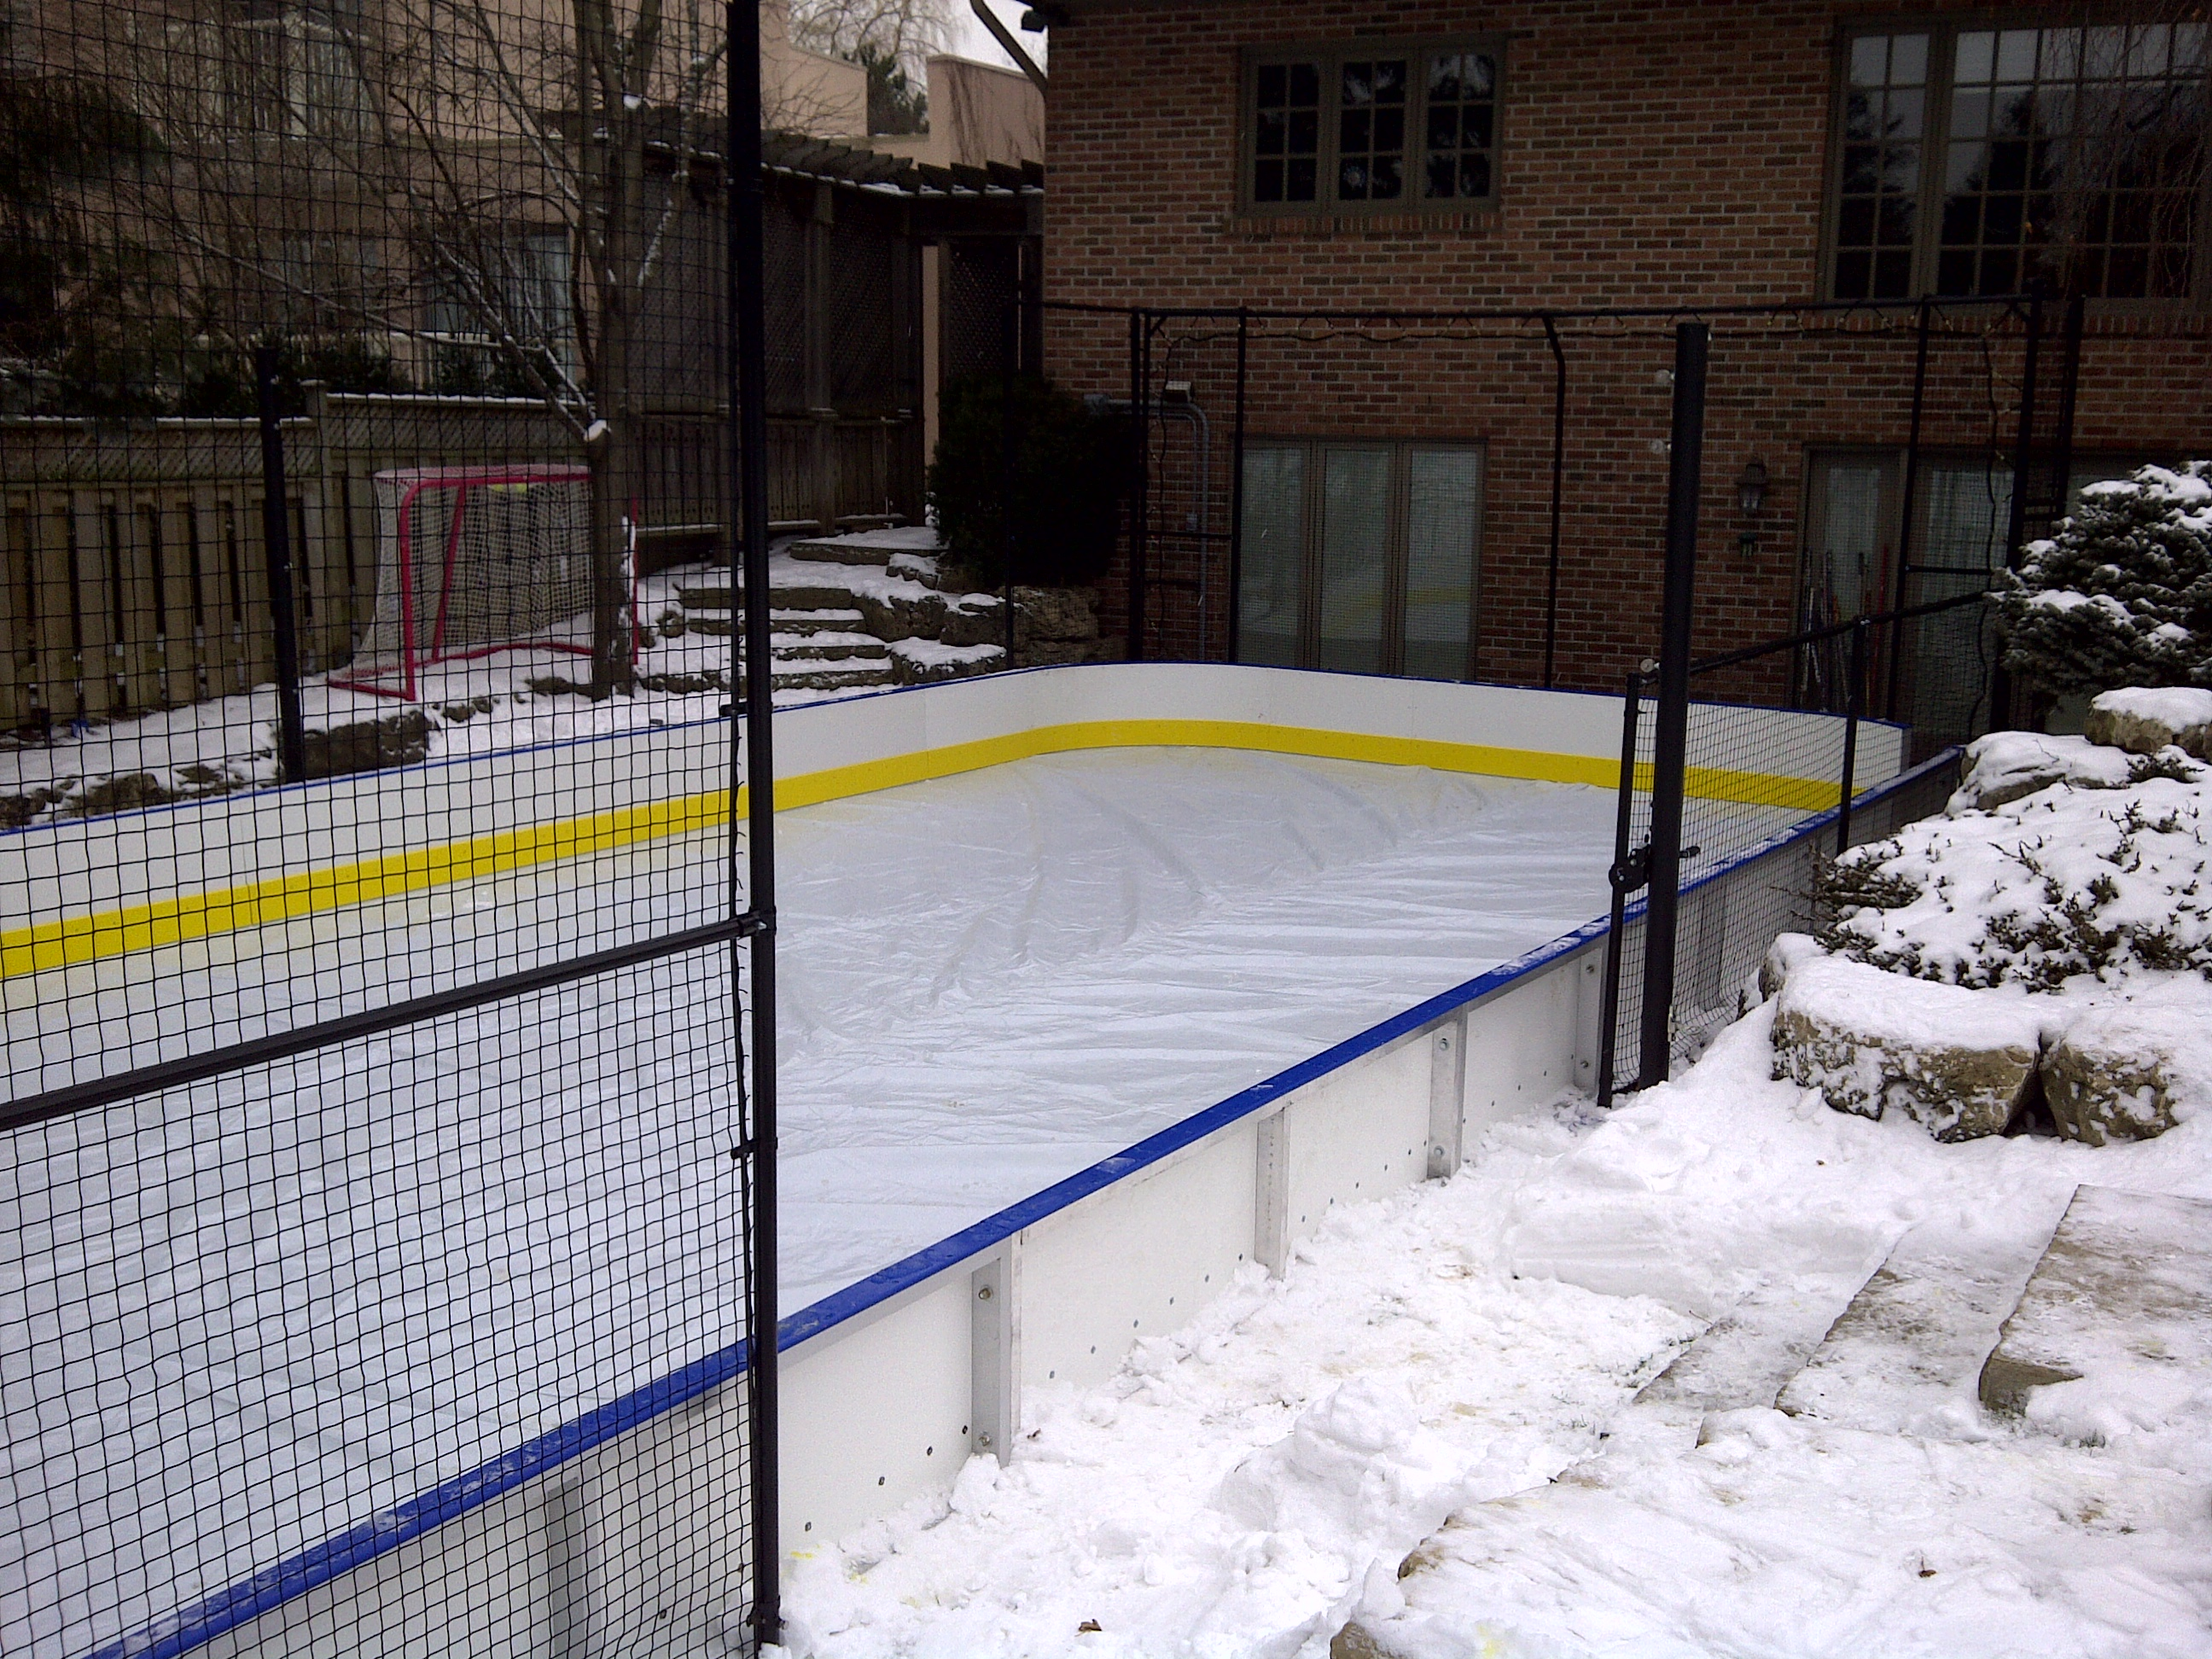 give your family the ultimate holiday gift a backyard court or